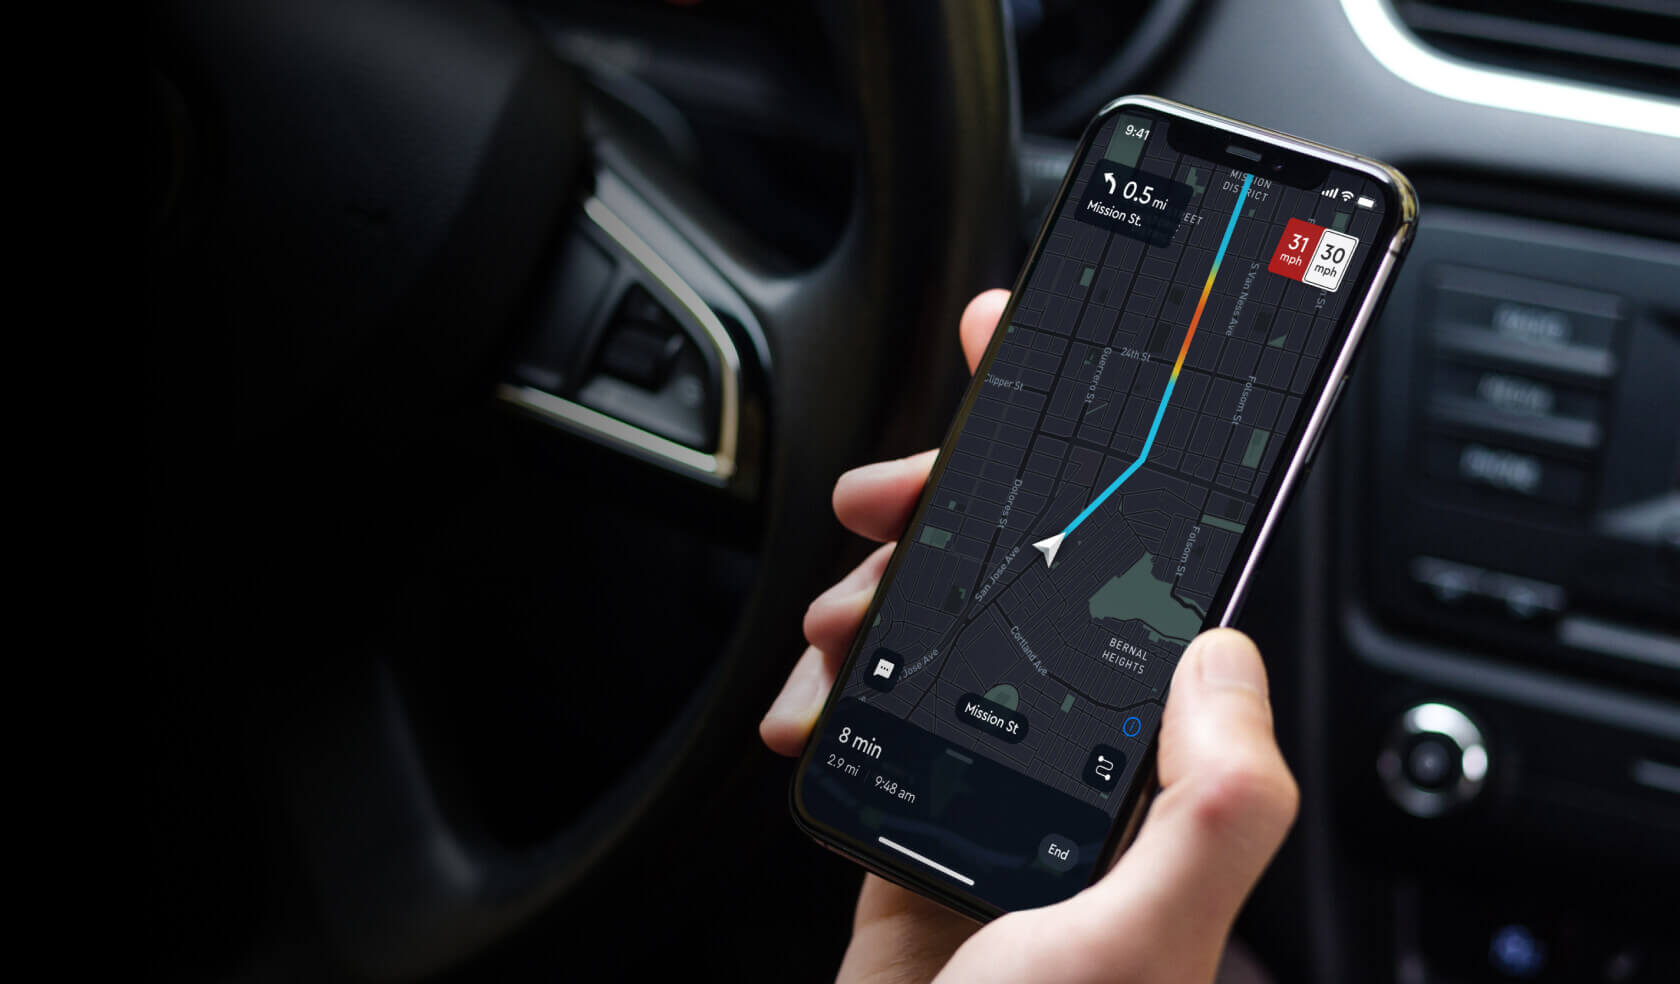 Mapbox in-car navigation on a mobile phone.